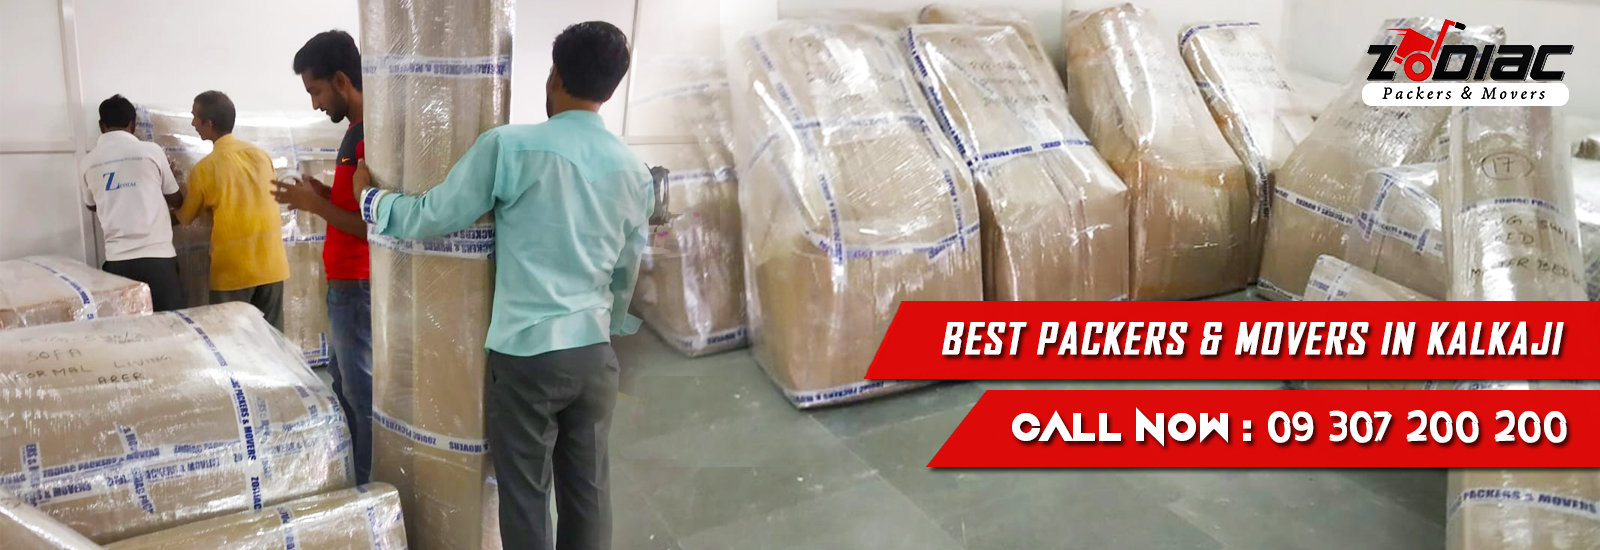 Packers and Movers in Kalkaji